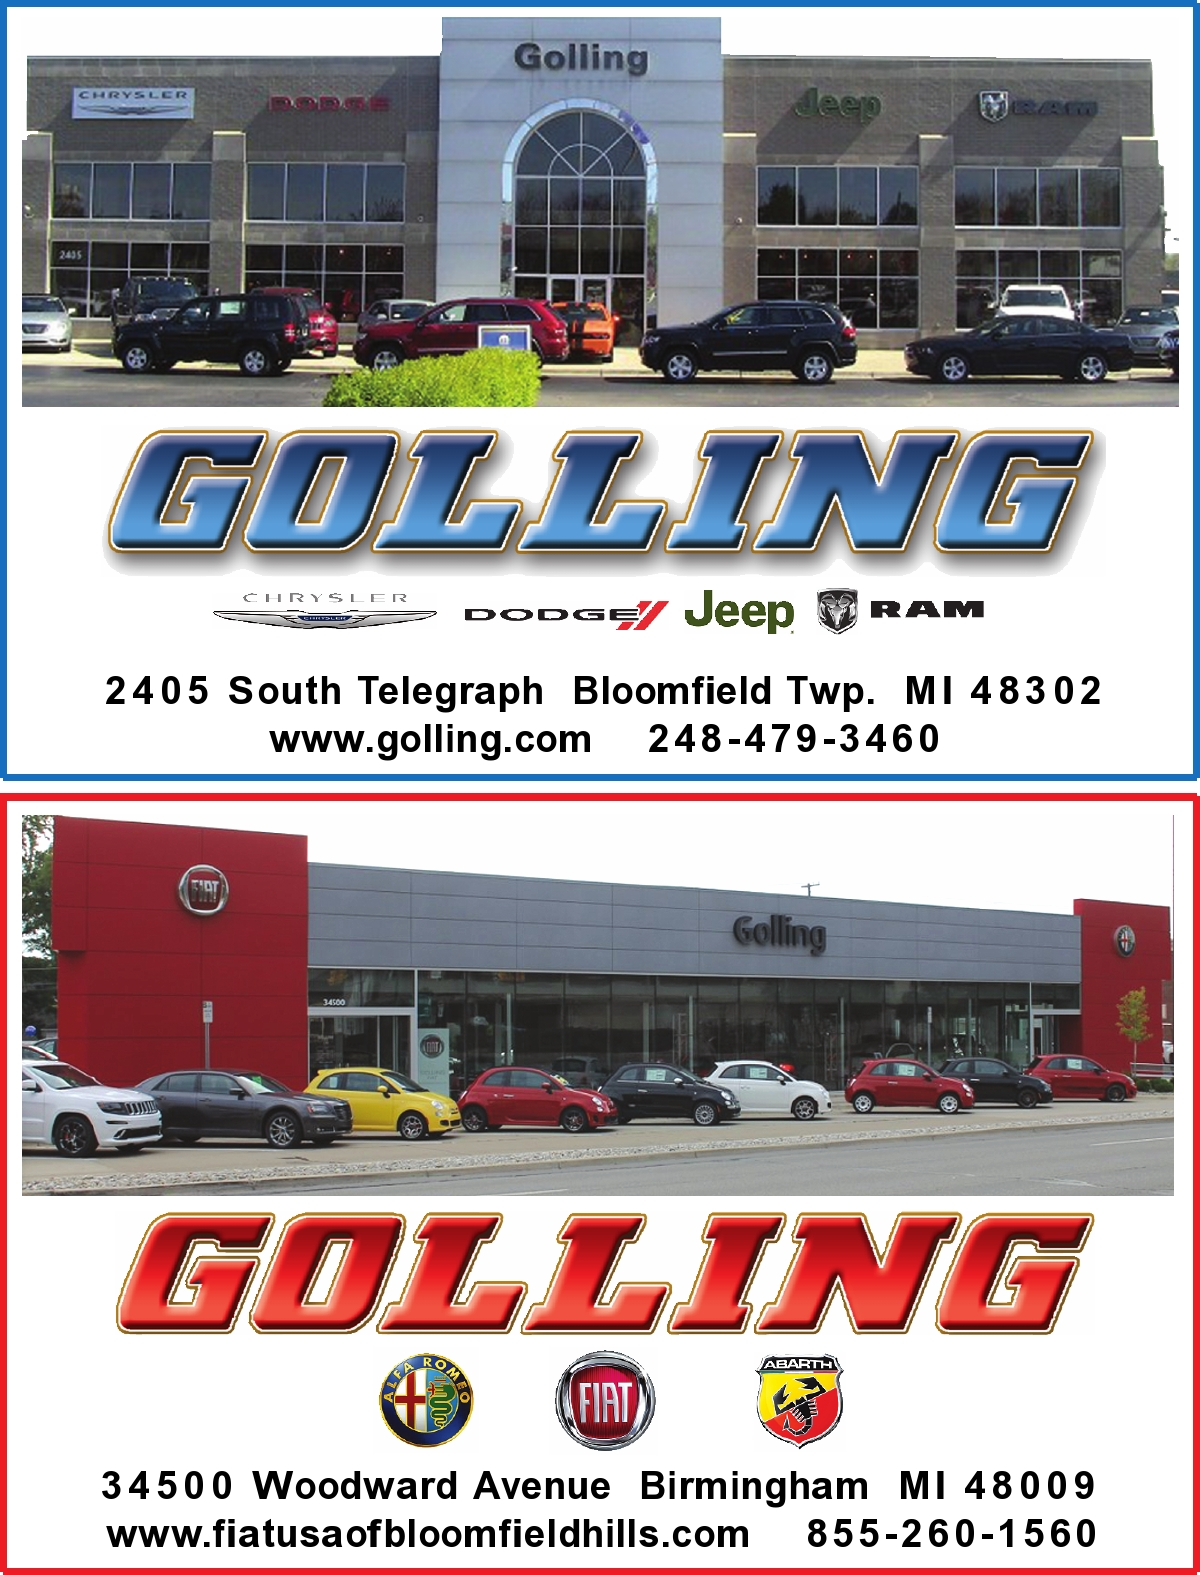 Golling-Chrysler-Jeep-Dodge-Ram